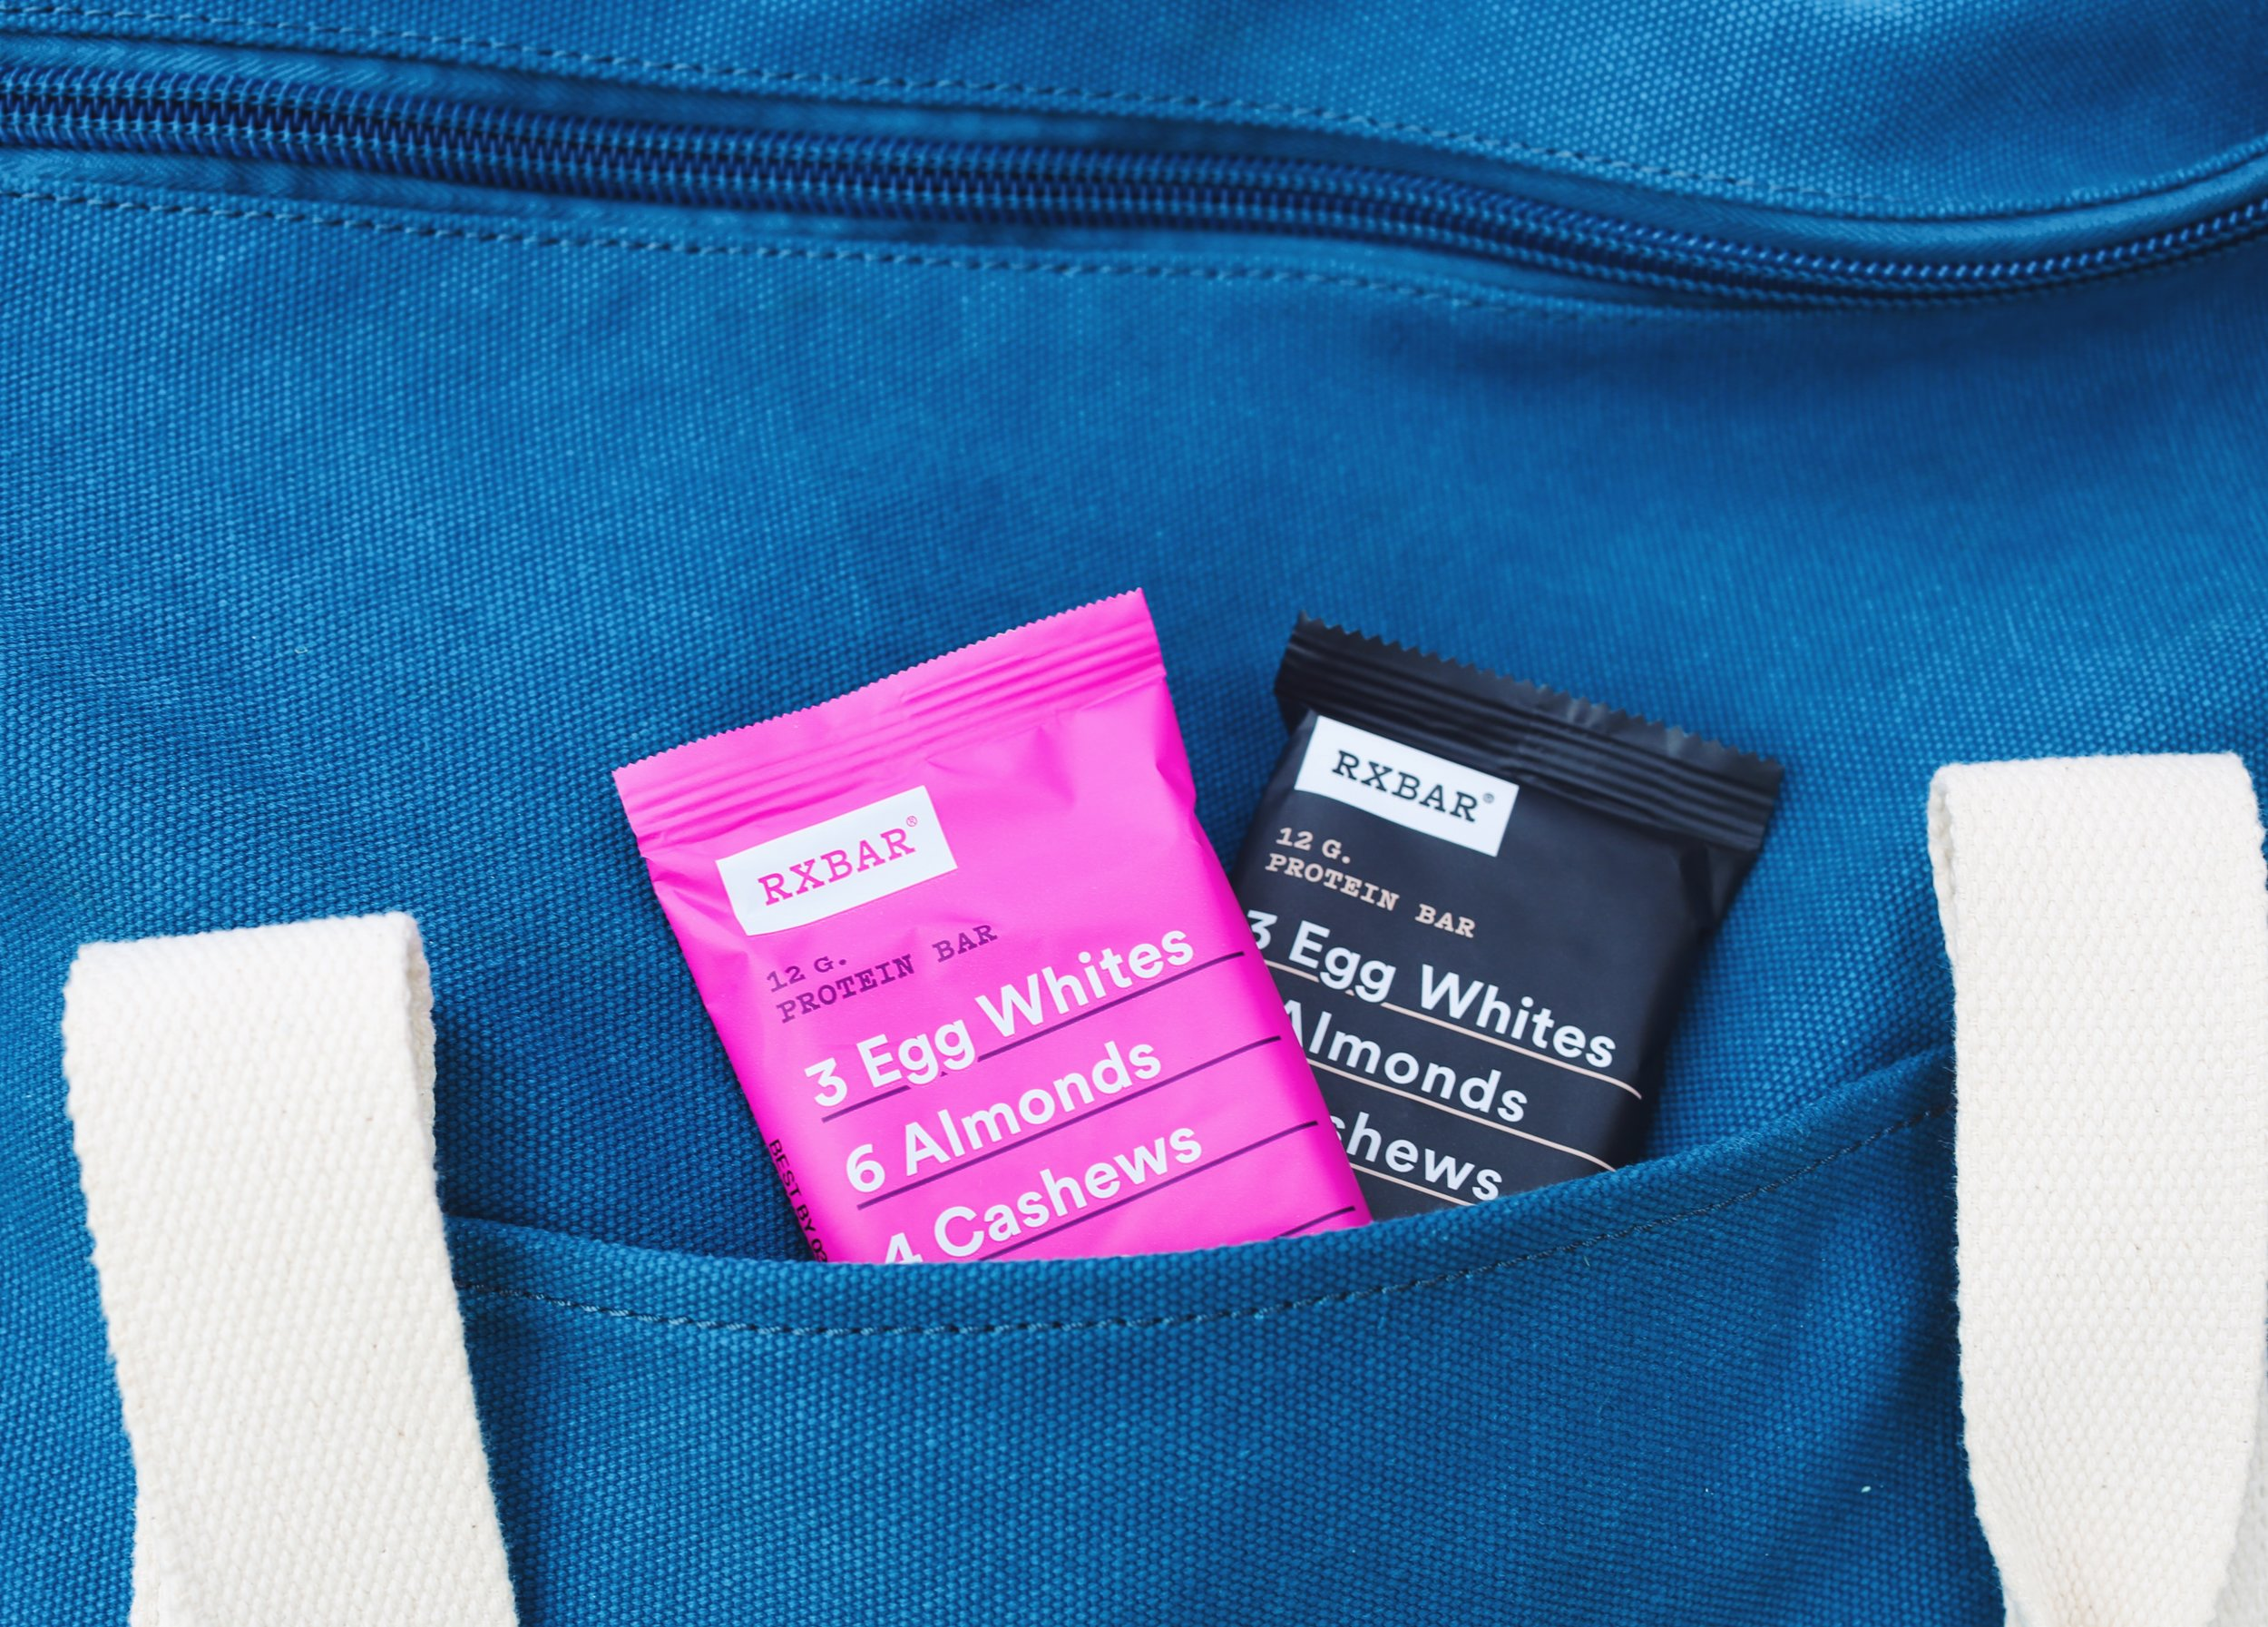 rxbar travel carry-on what to pack